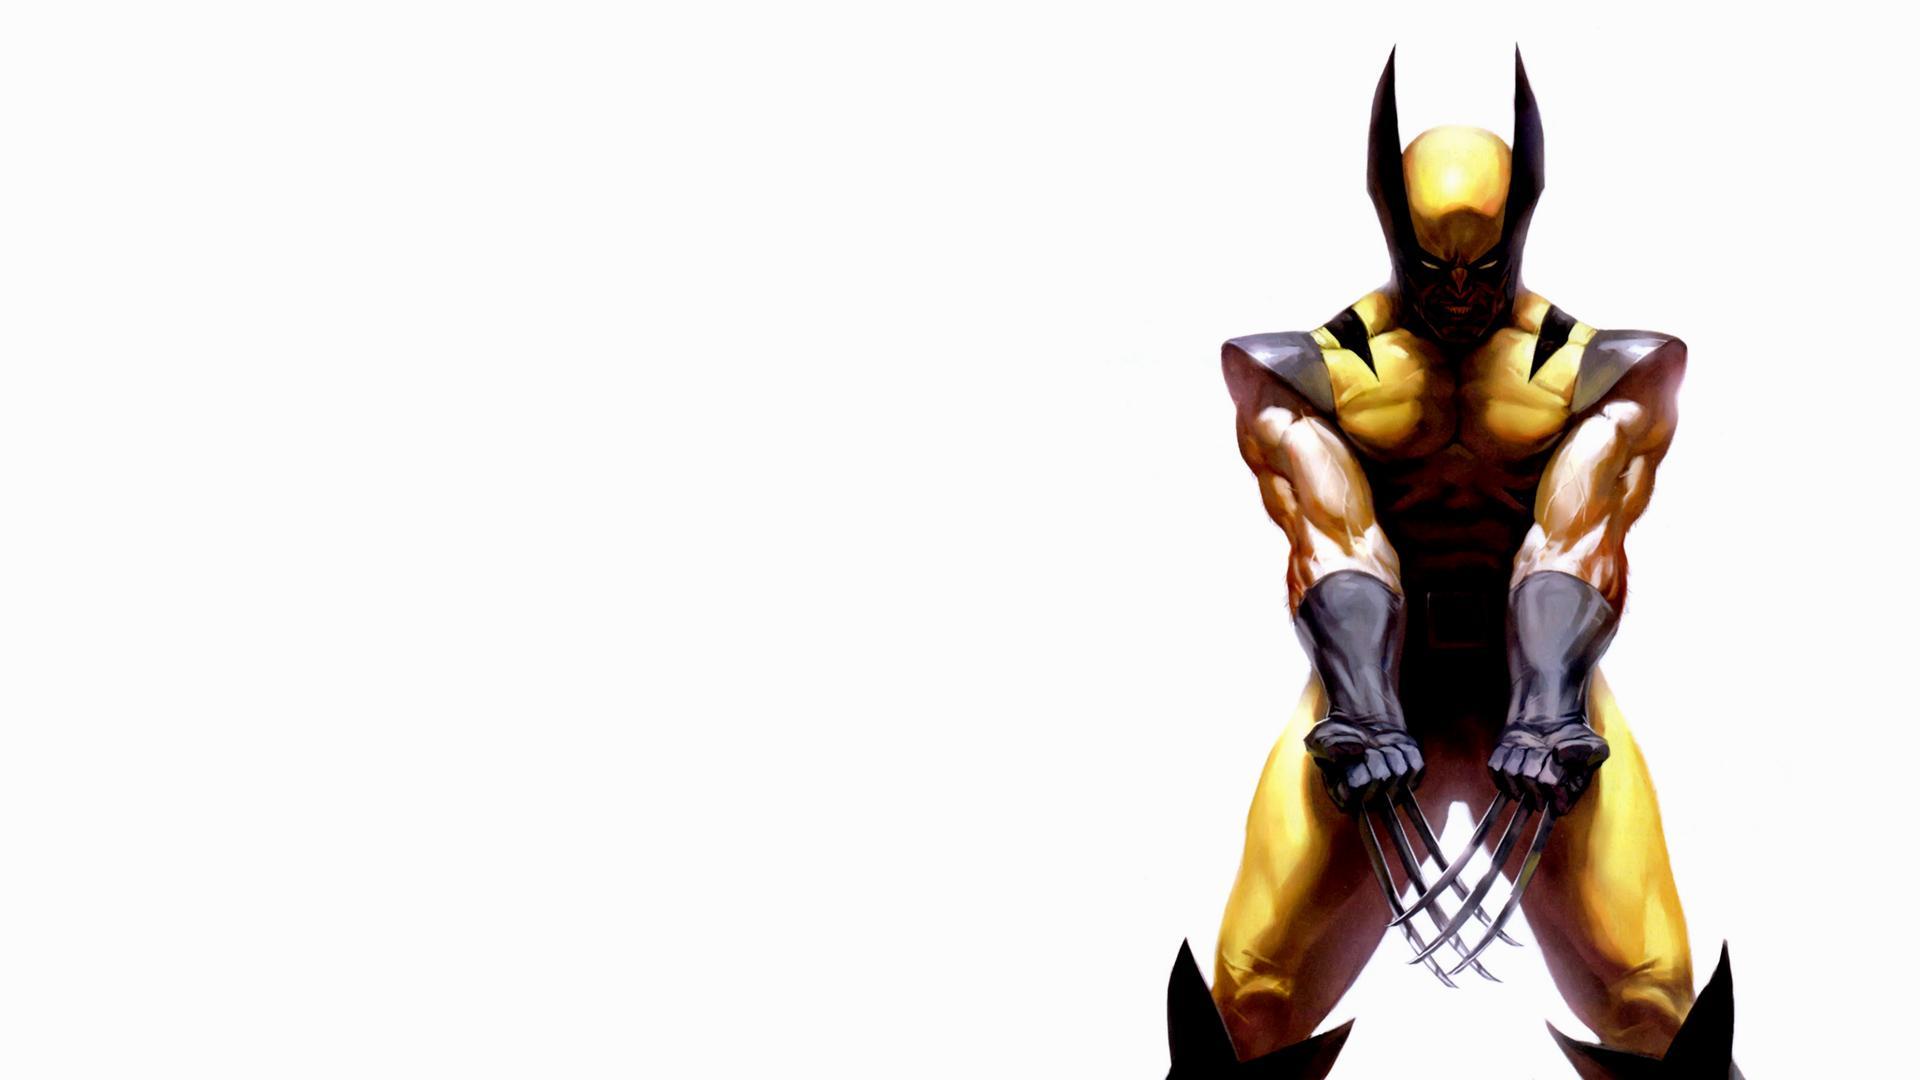 wolverine hd wallpapers/backgrounds for free download 1920x1080